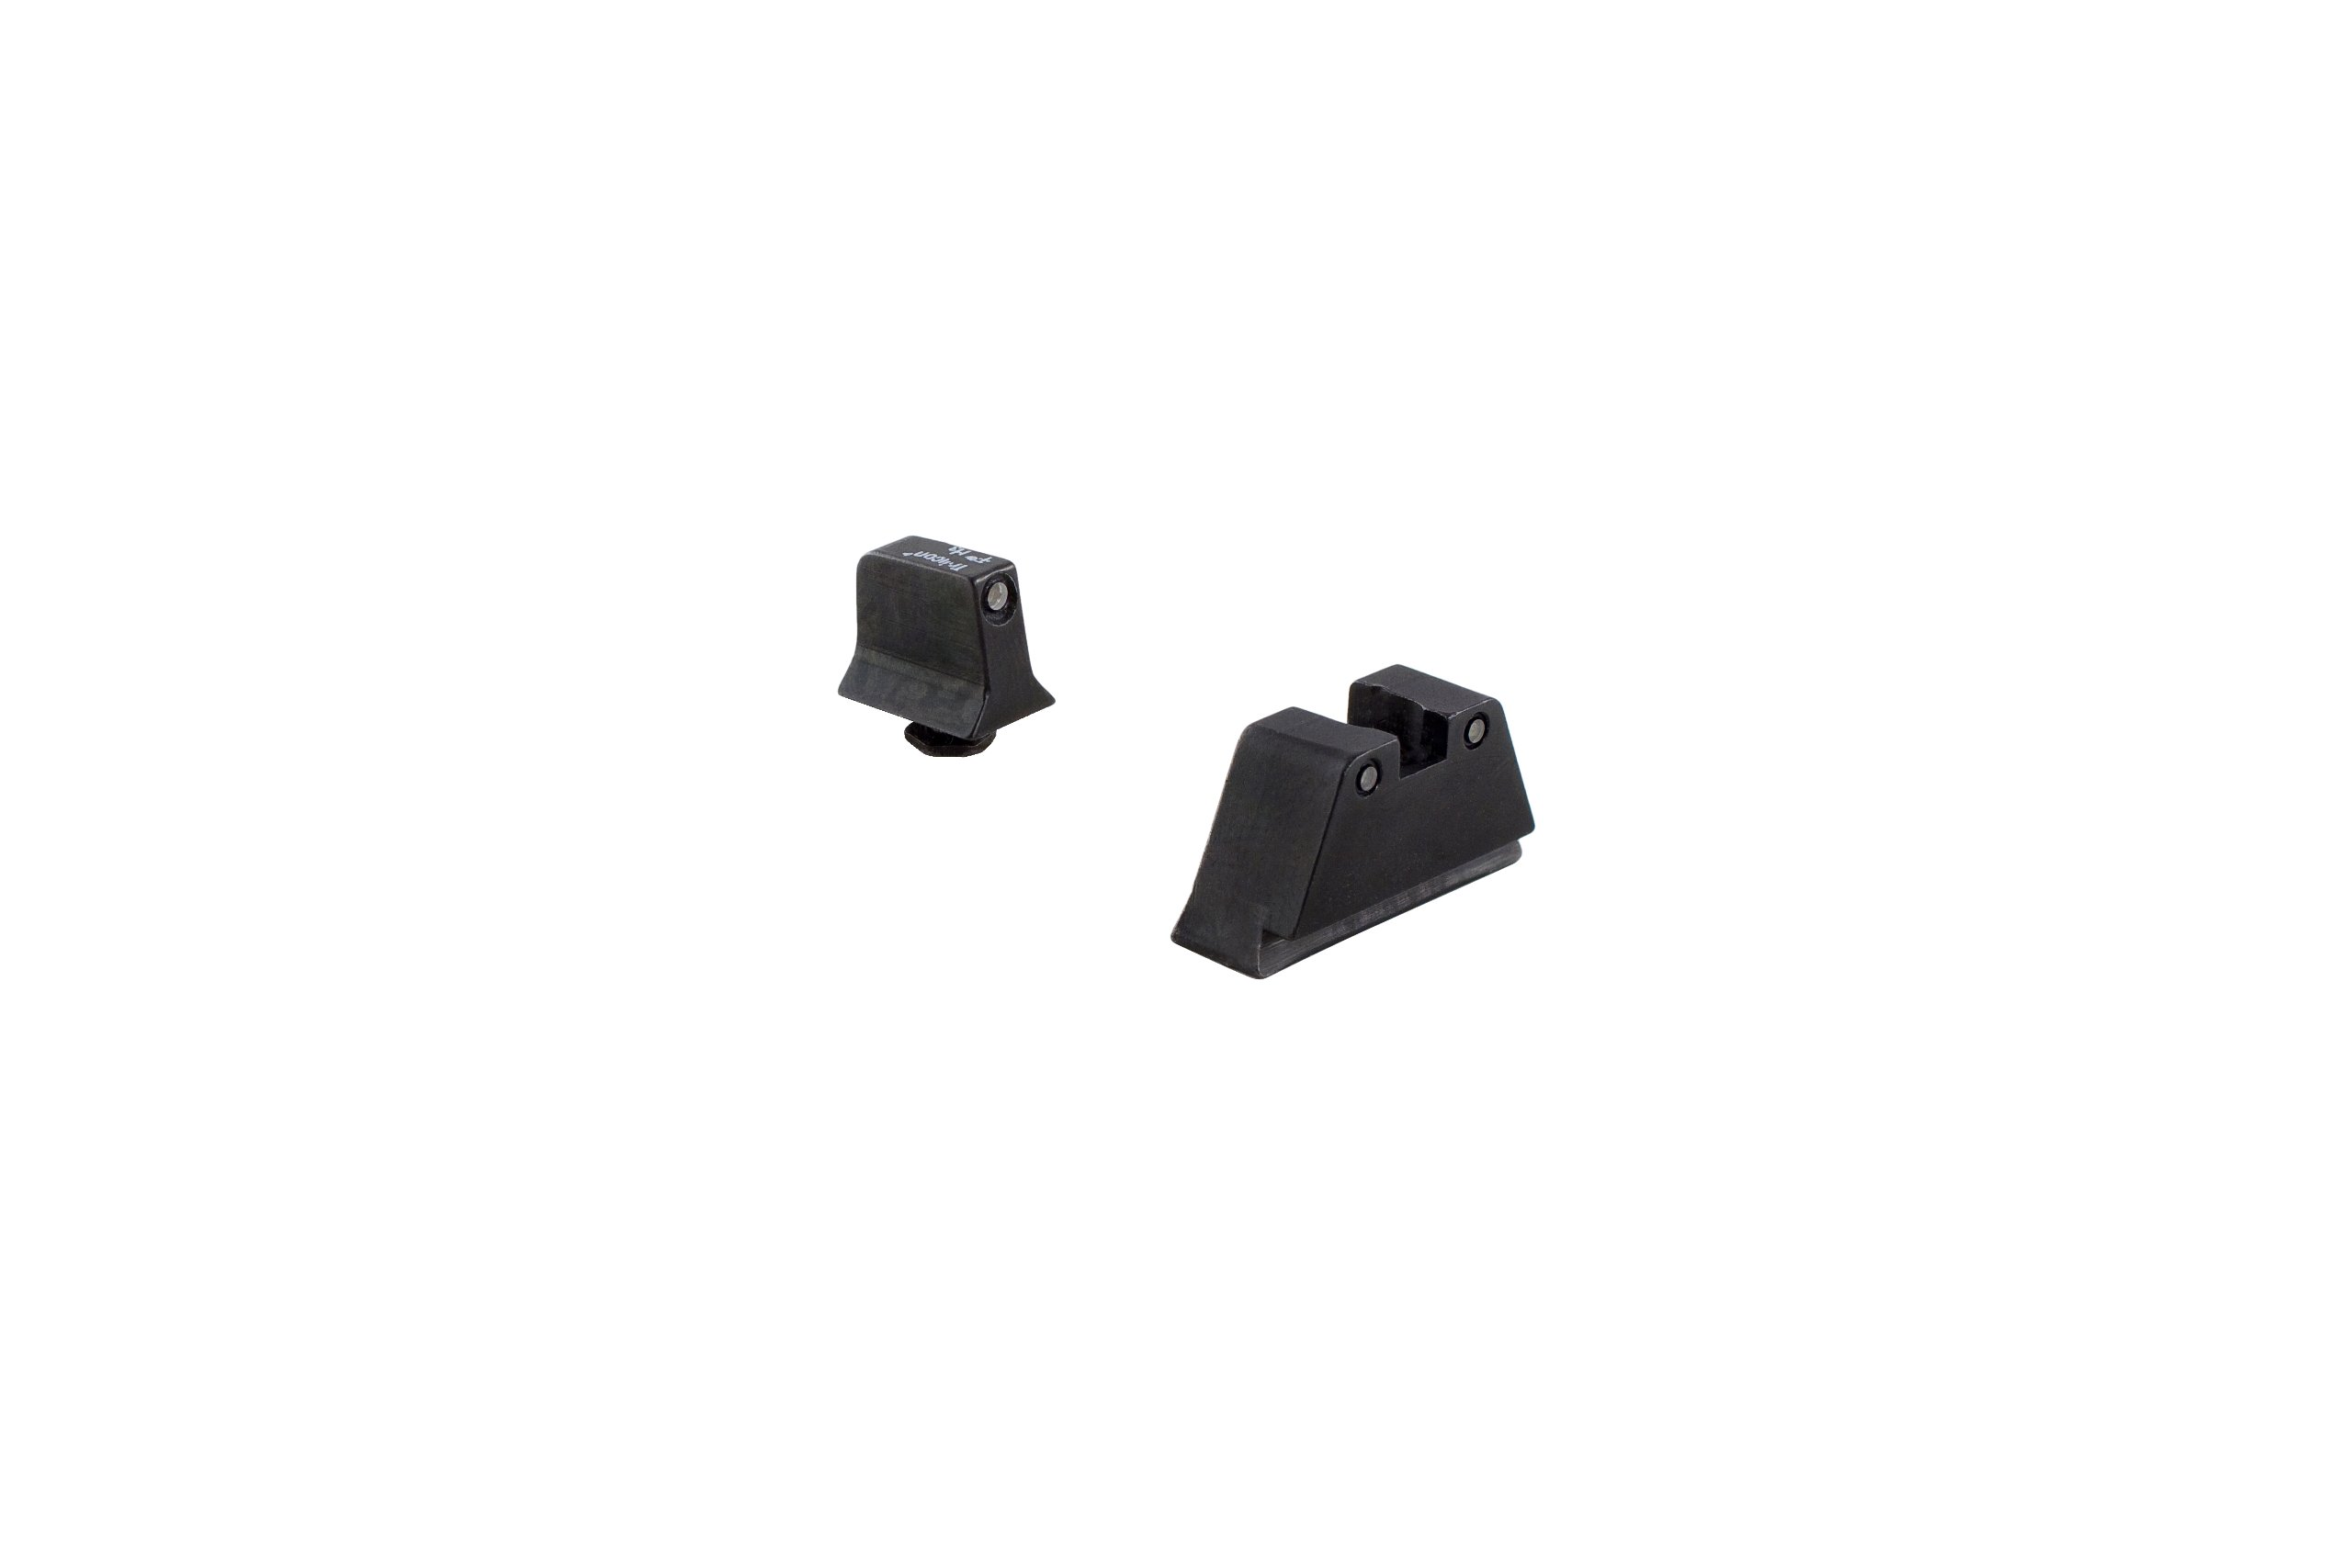 Trijicon Suppressor Night Sight Set, Black Front/Black Rear with Green Lamps for Glock 10mm/45ACP Models